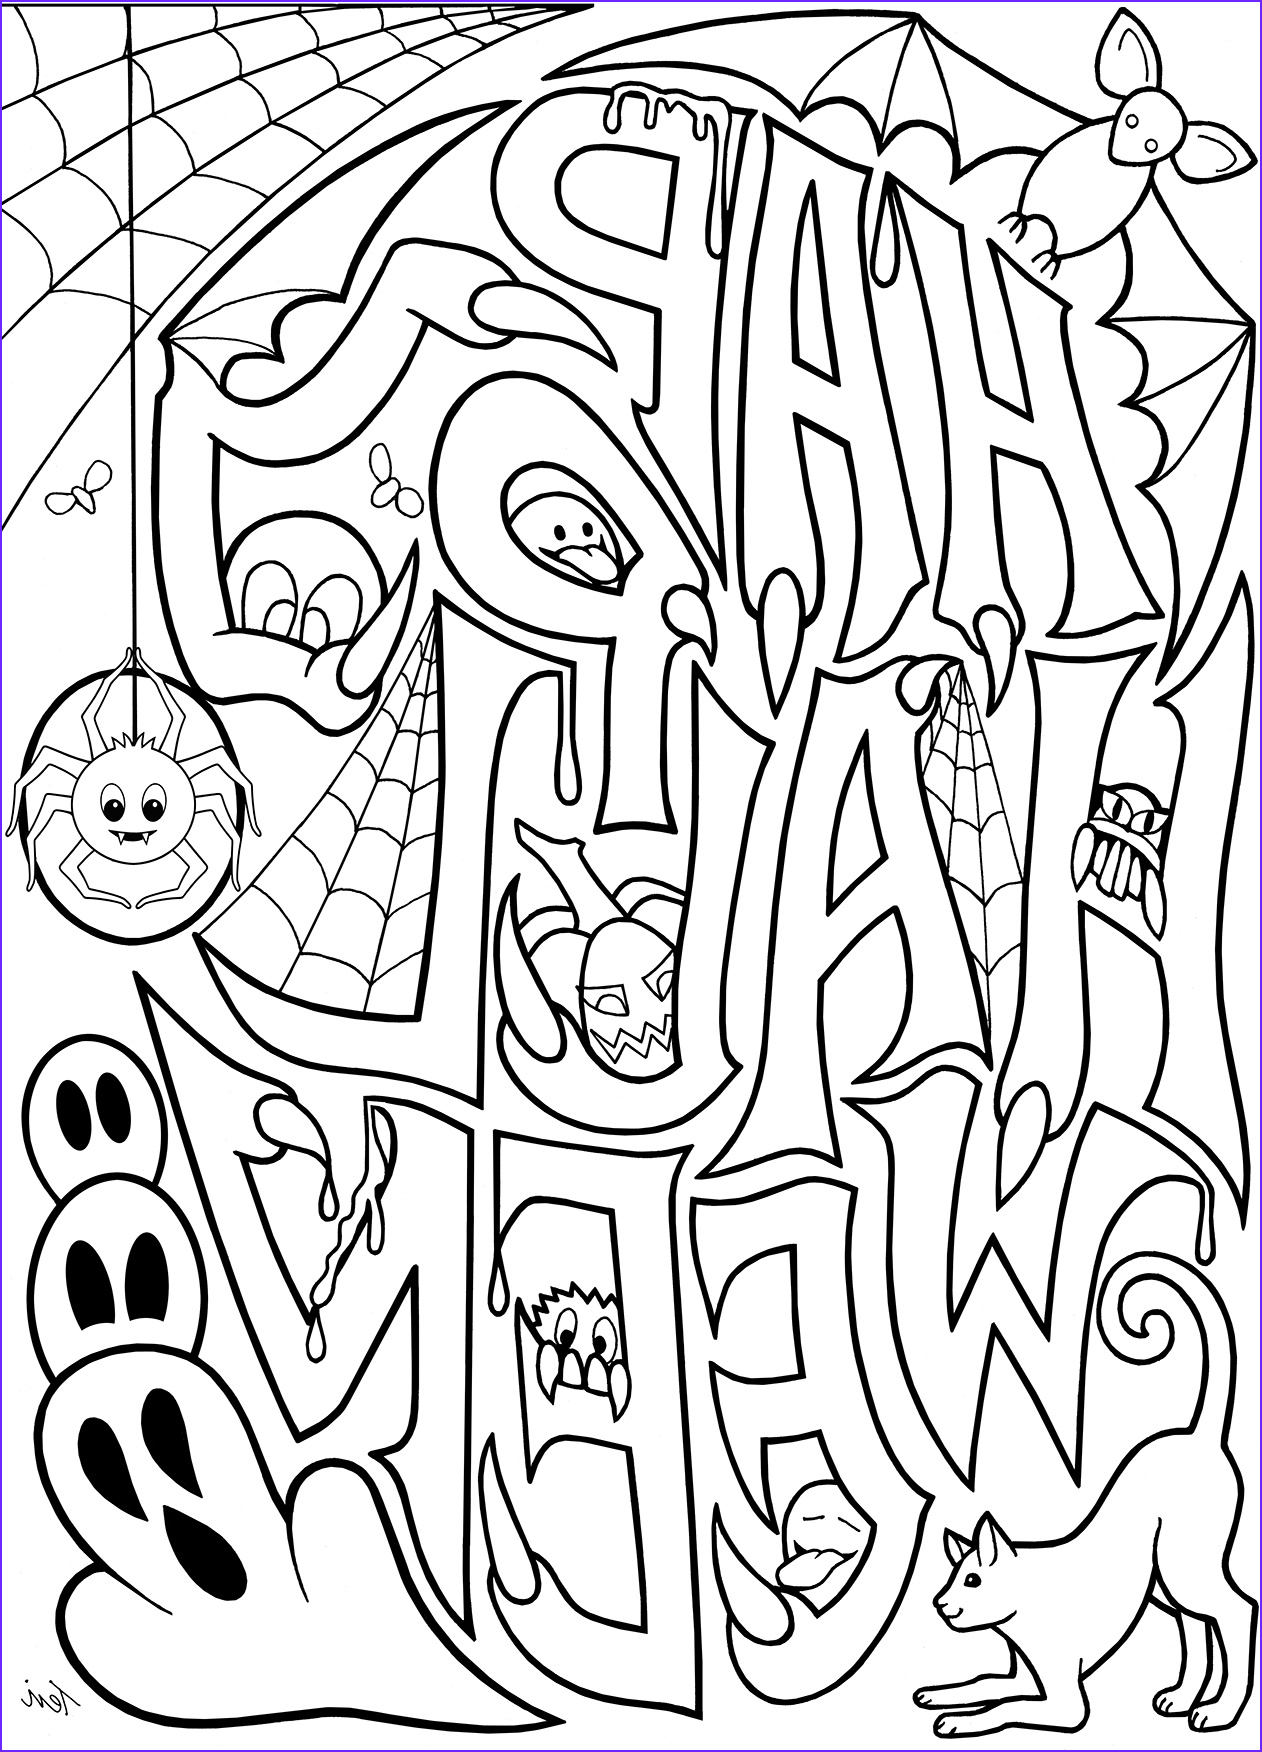 Free Halloween Coloring Sheets Cool Gallery Free Adult Coloring Book Pages Happy Halloween by Blue